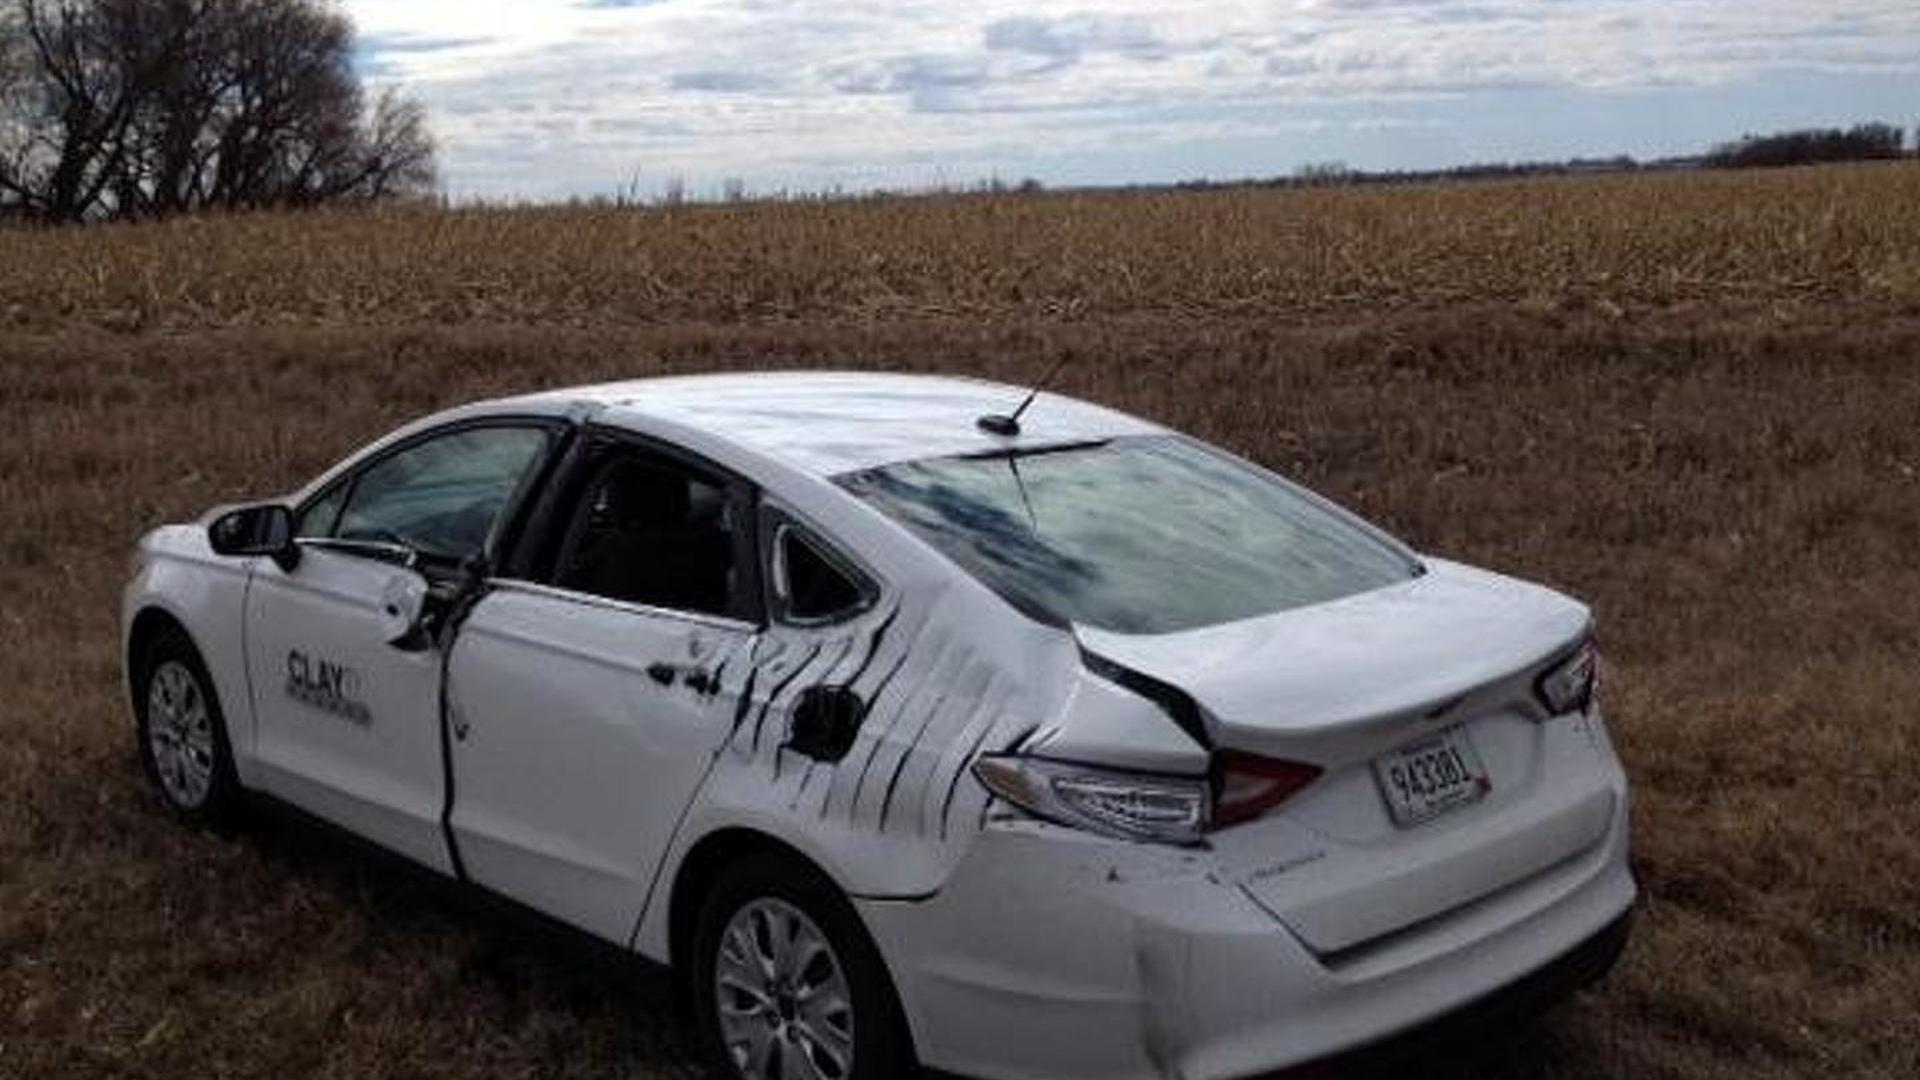 Small airplane hits Ford Fusion during emergency landing on highway